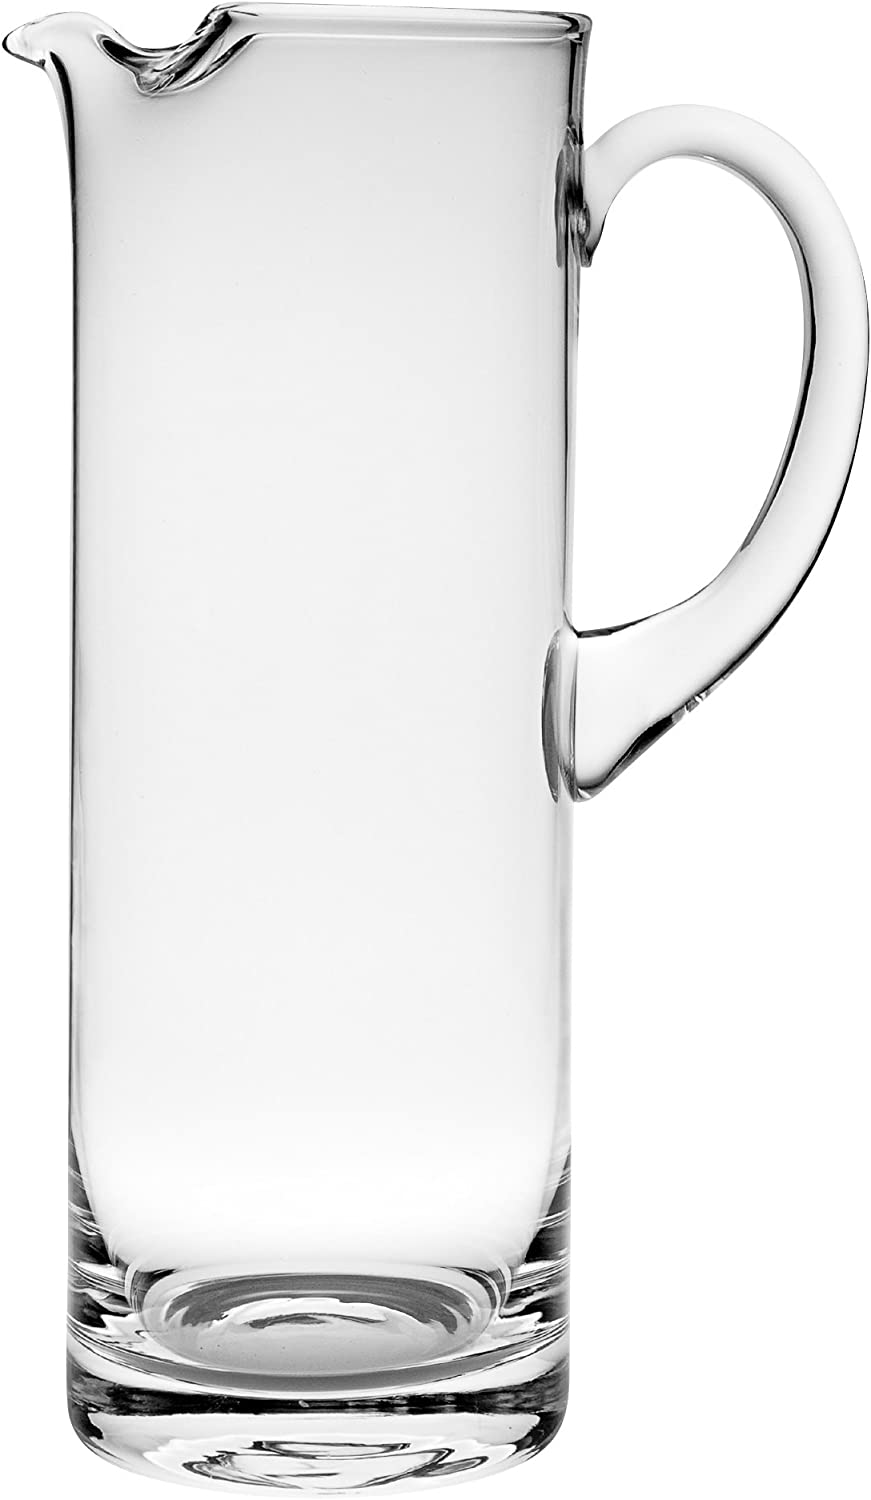 "Barski Handmade Straight Sided Glass Pitcher with handle , With Spout, Ice Lip, 54 oz. 11"" H, Made in Europe"